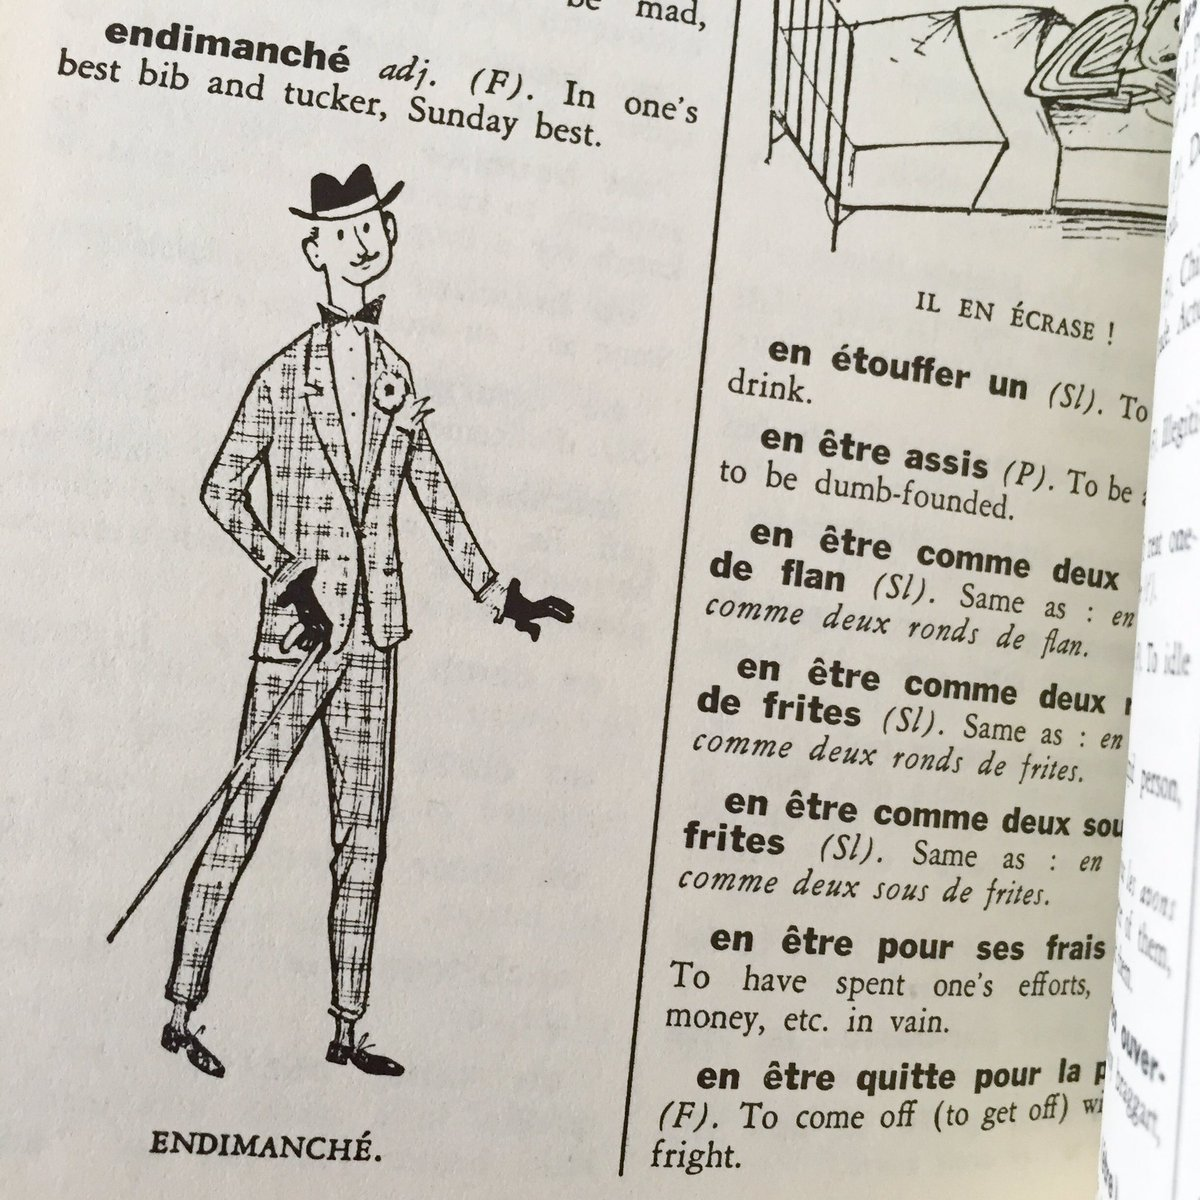 Jonathan Hsy On Twitter Another Gem From 1950s French Slang Dictionary A Single Word For Arrayed In Ones Sunday Best Endimanch